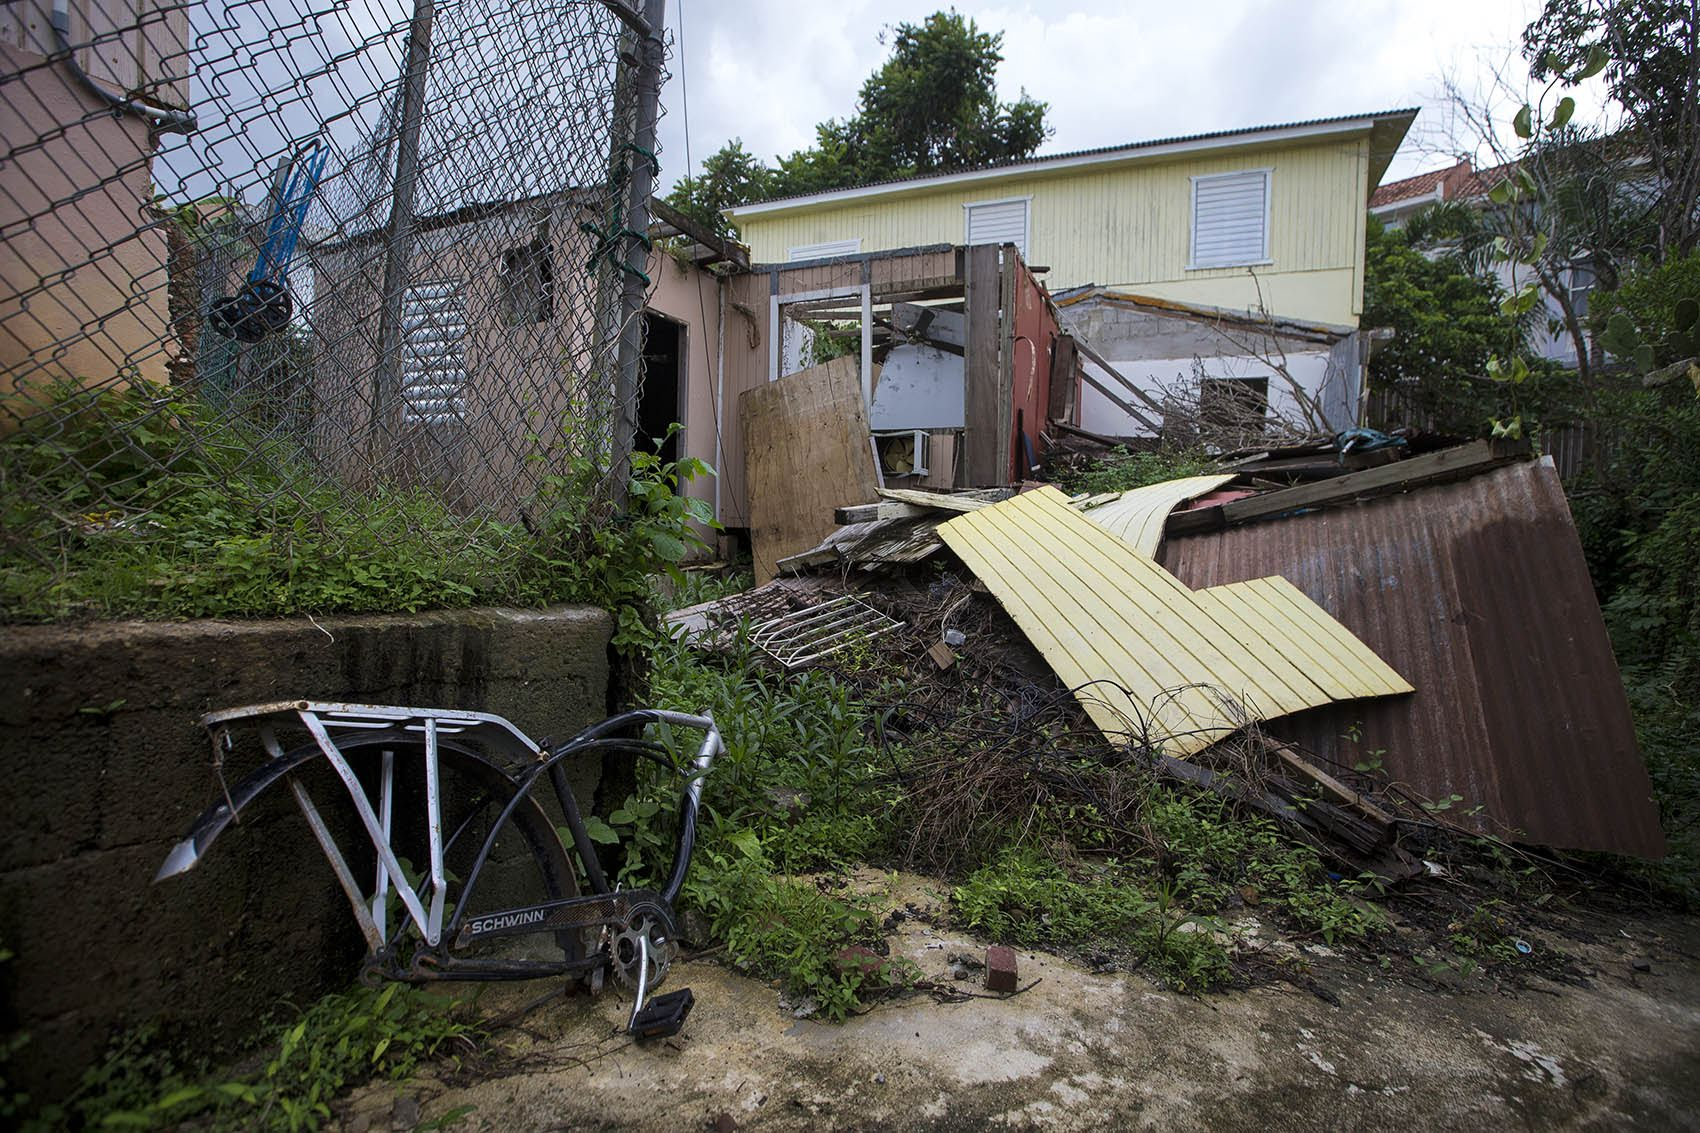 A house in Guaynabo, which was completely leveled by Hurricane Maria, still sits in ruin one year after the storm. Photo by Jesse Costa for WBUR